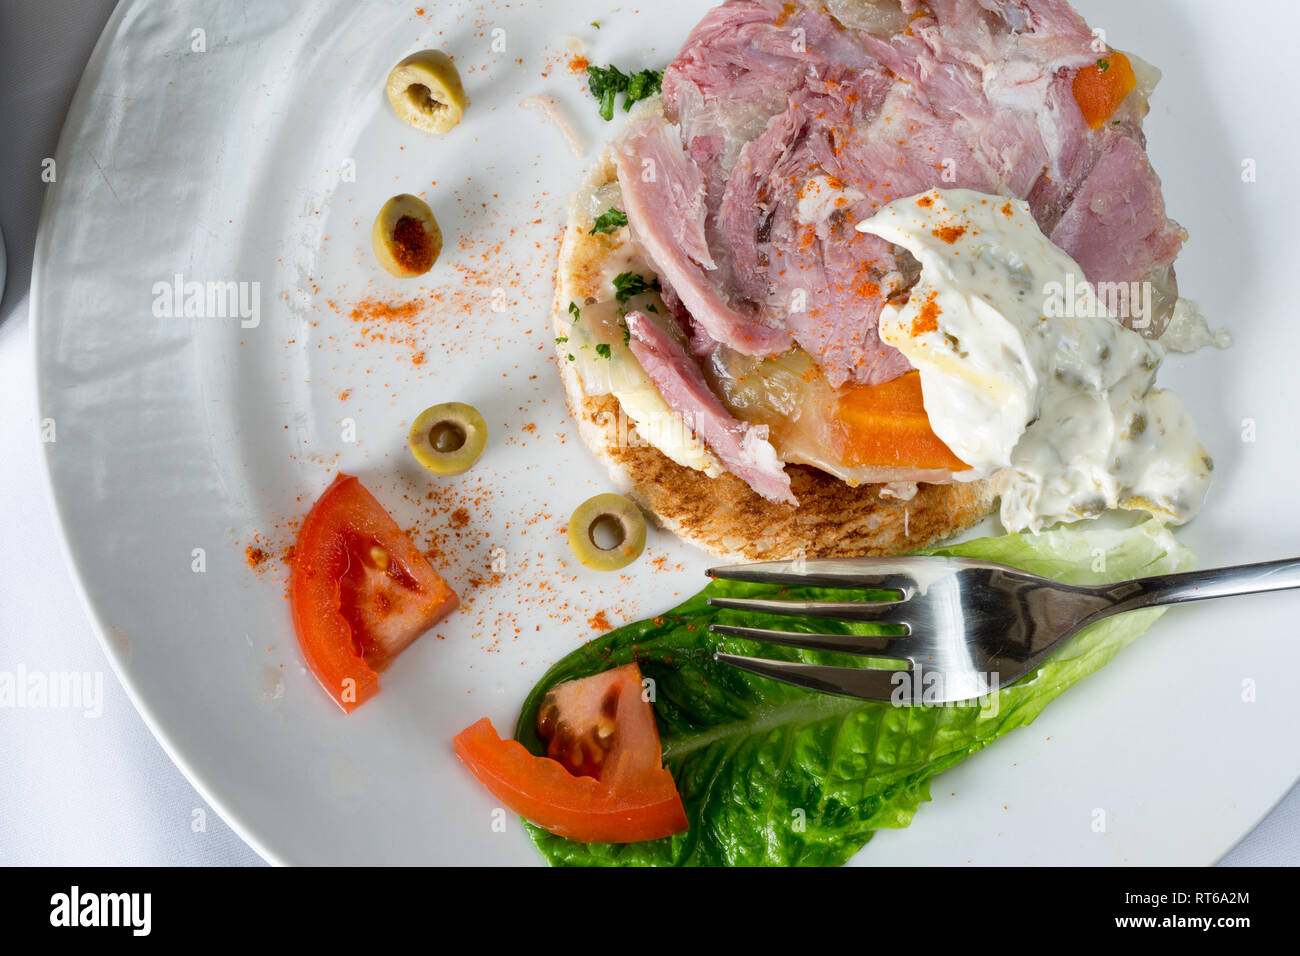 Entree dish of Ham hock terrine on buttered toast with a natural yogurt dip - Stock Image